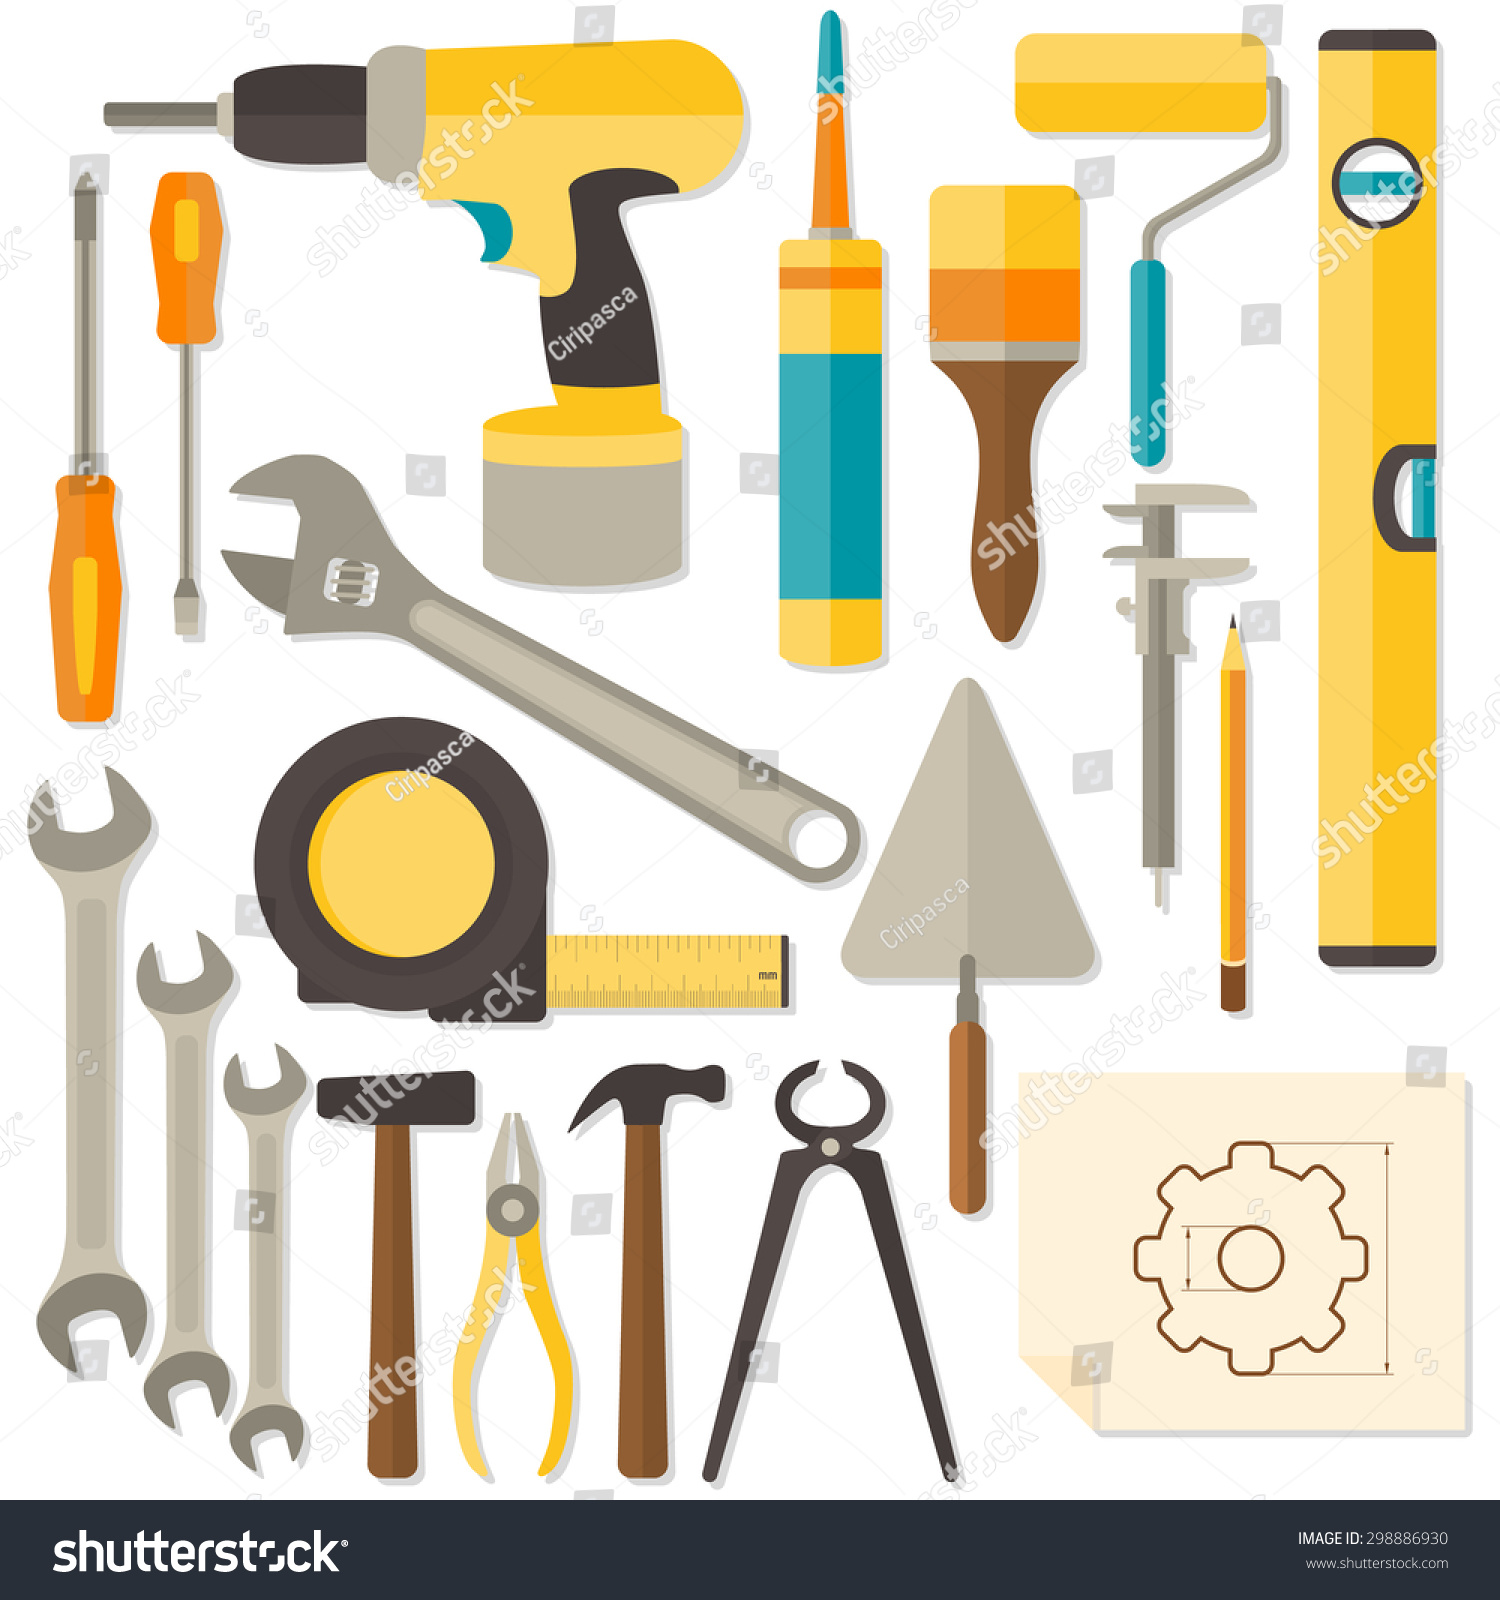 Vector Flat Design DIY And Home Renovation Tools Isolated On White  Background.